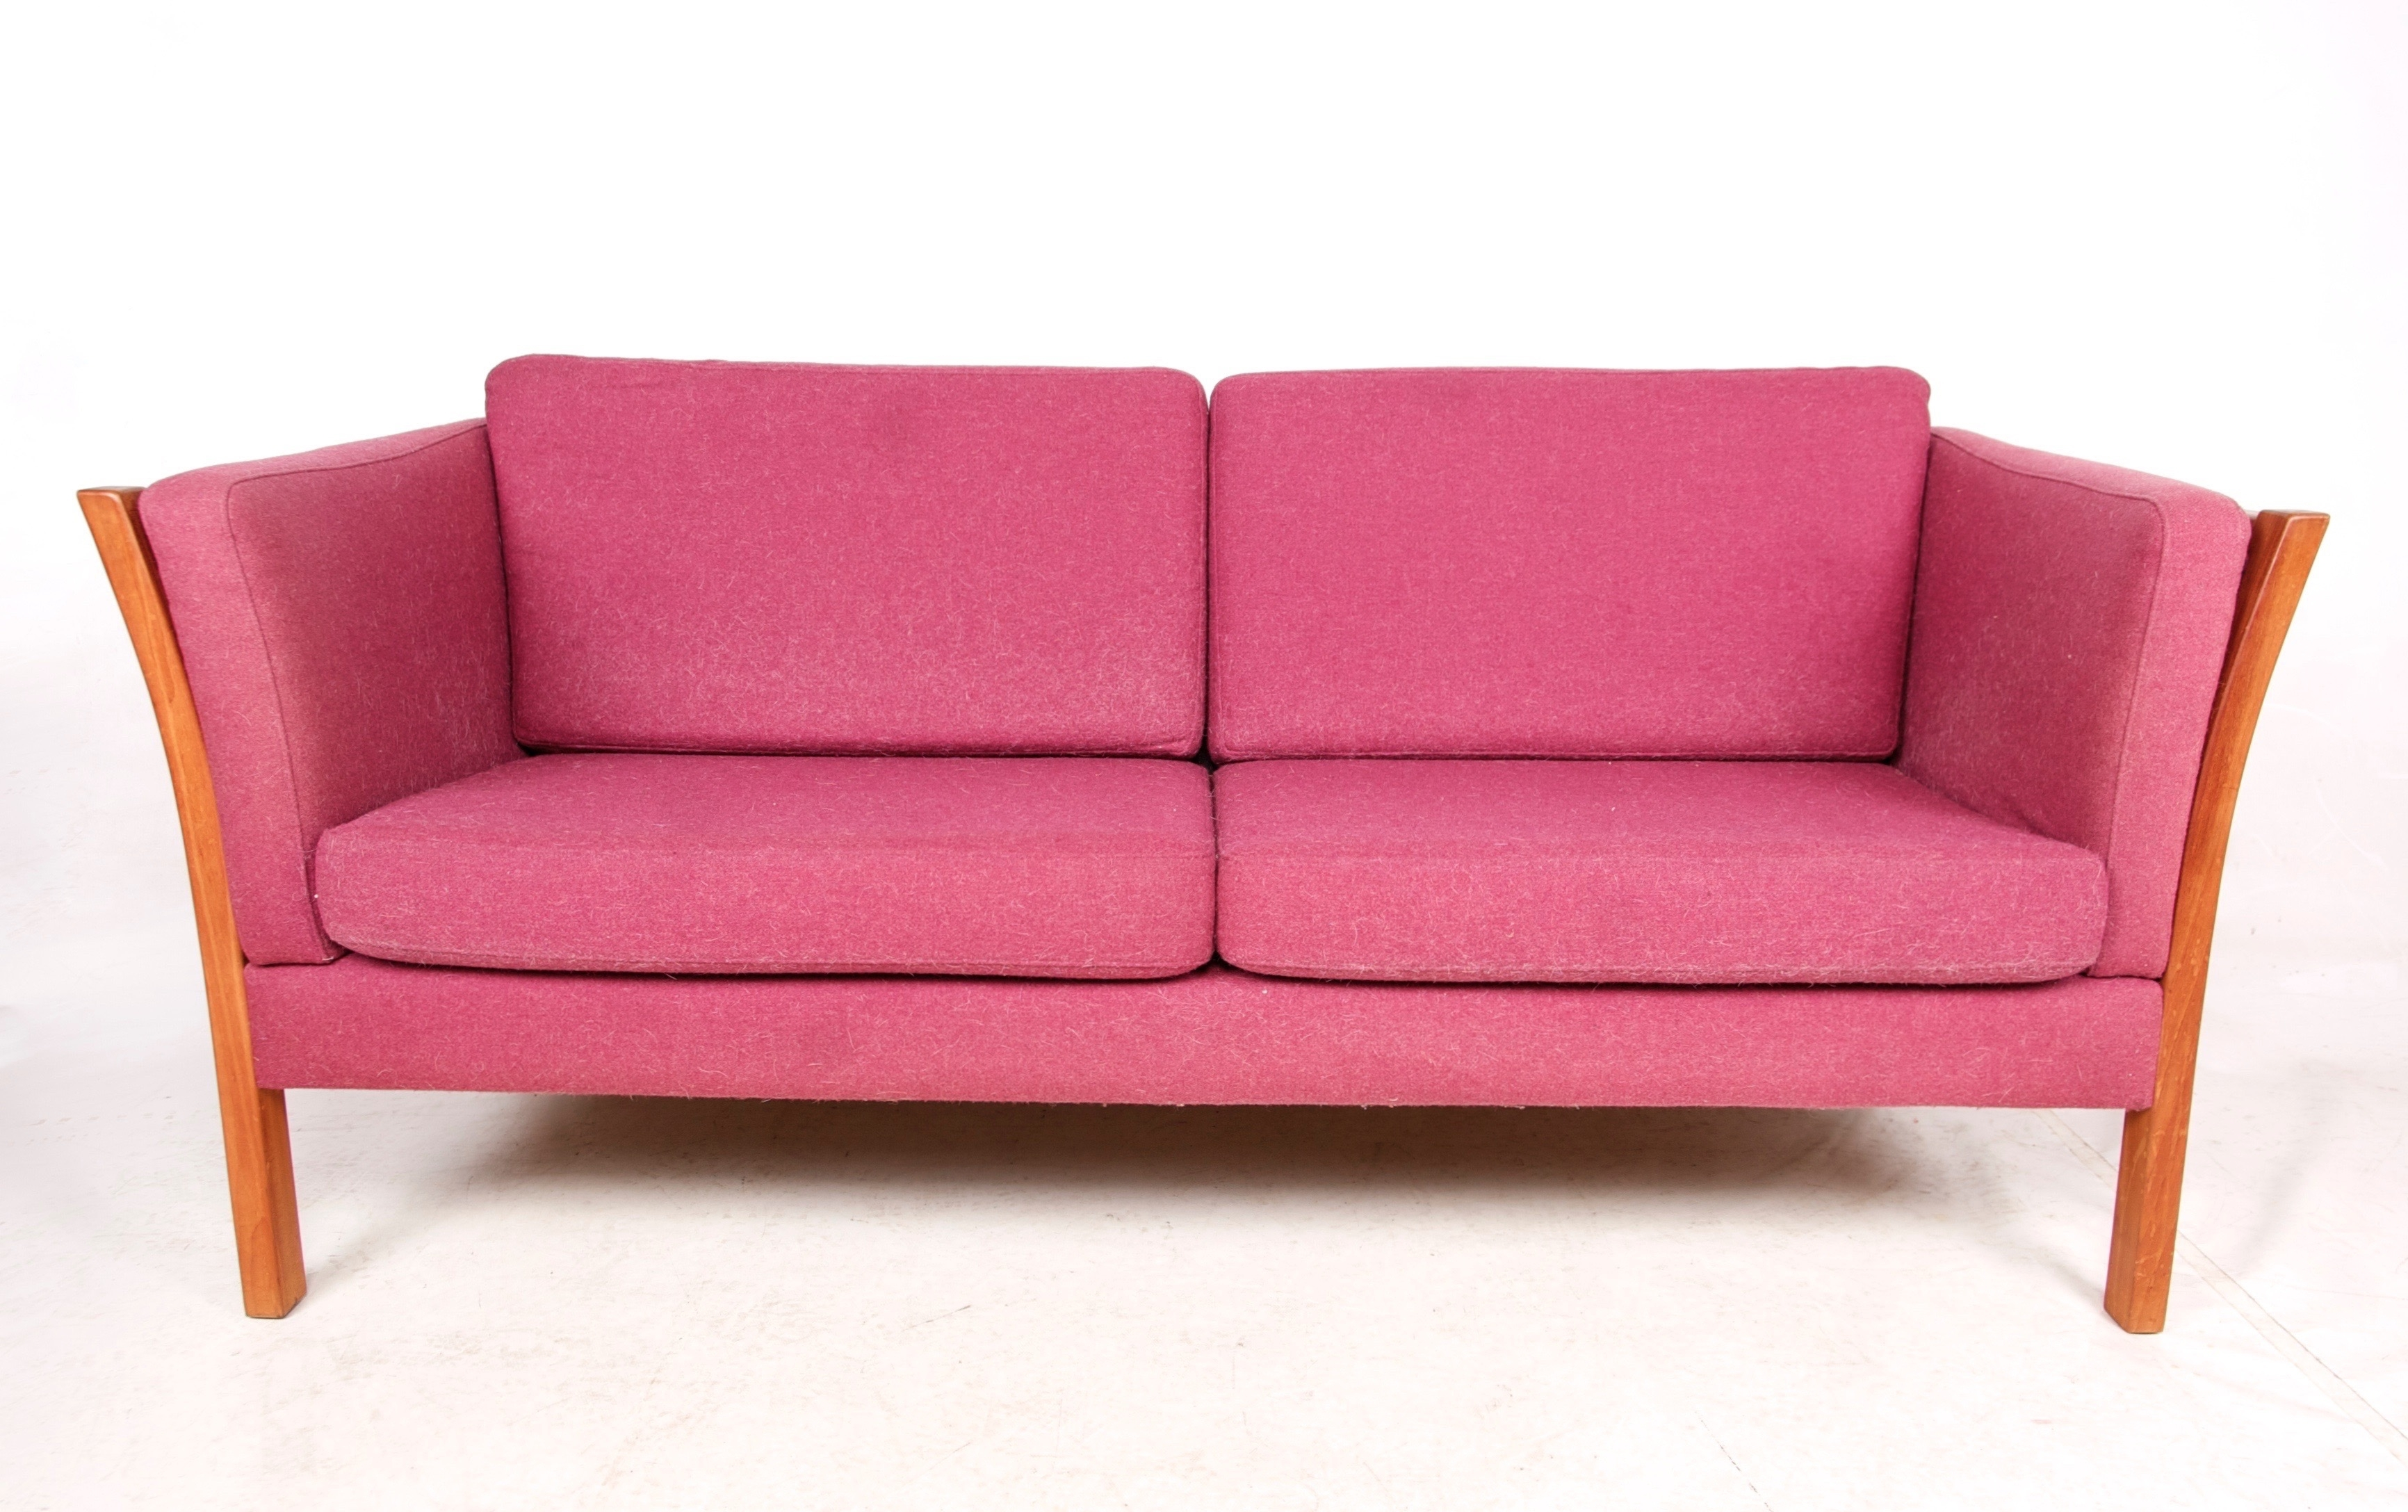 Famous Cheap Retro Sofas Regarding Pink Sofa Ads Buy Sell Used Find Right Price Here Retro Vintage (View 7 of 20)